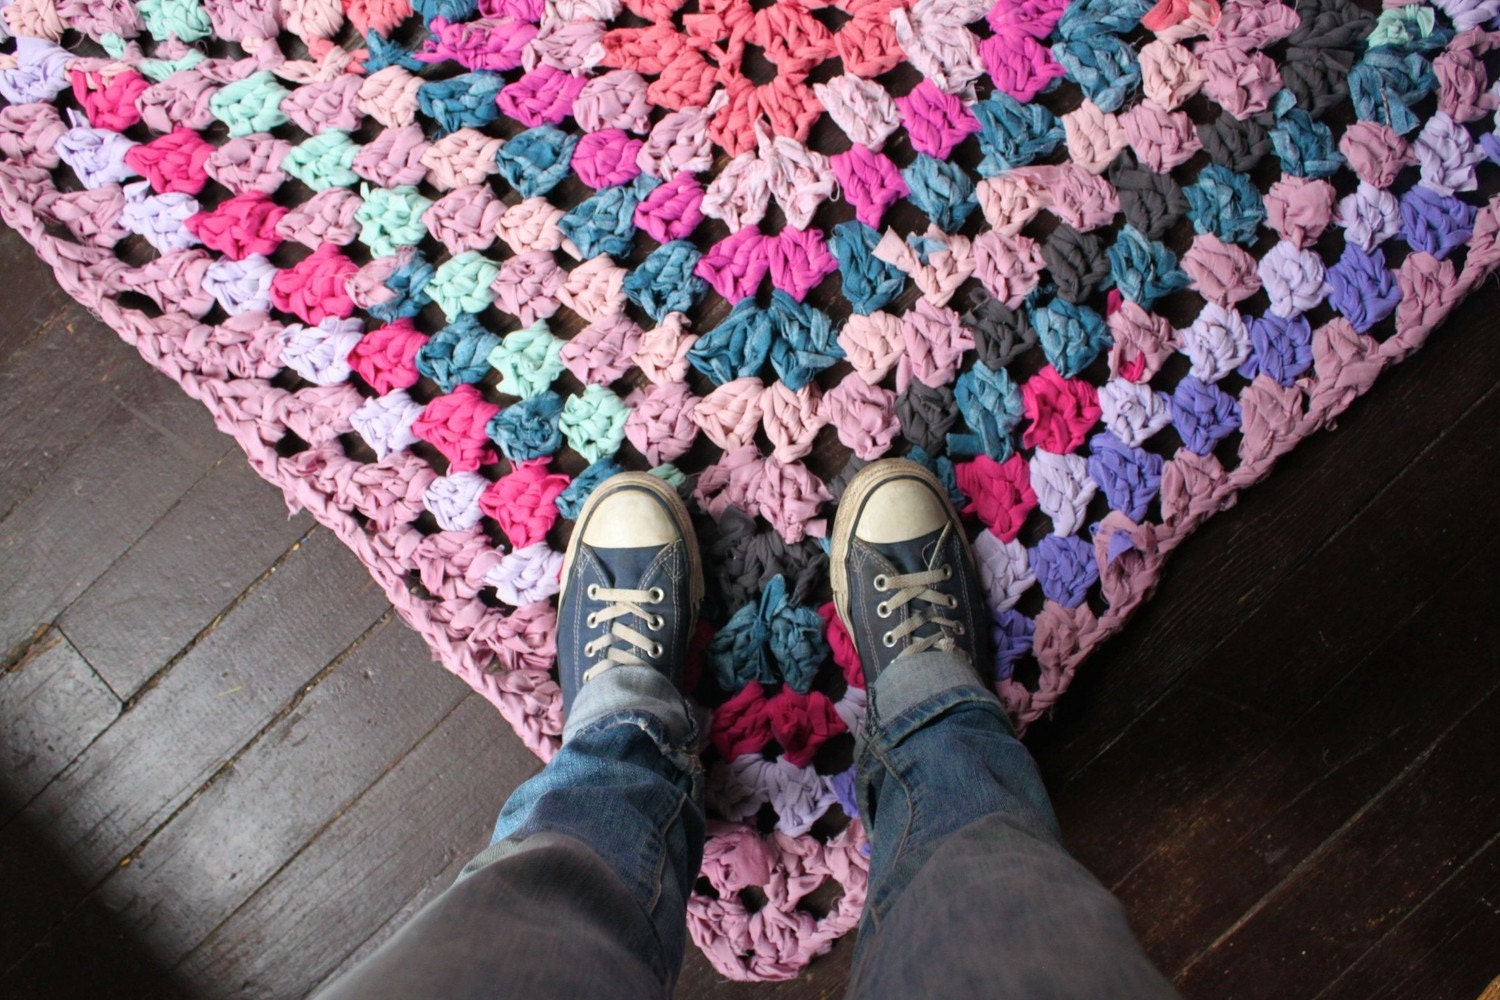 Crochet Granny Square Rug Patterns : Granny Square Rag Rug